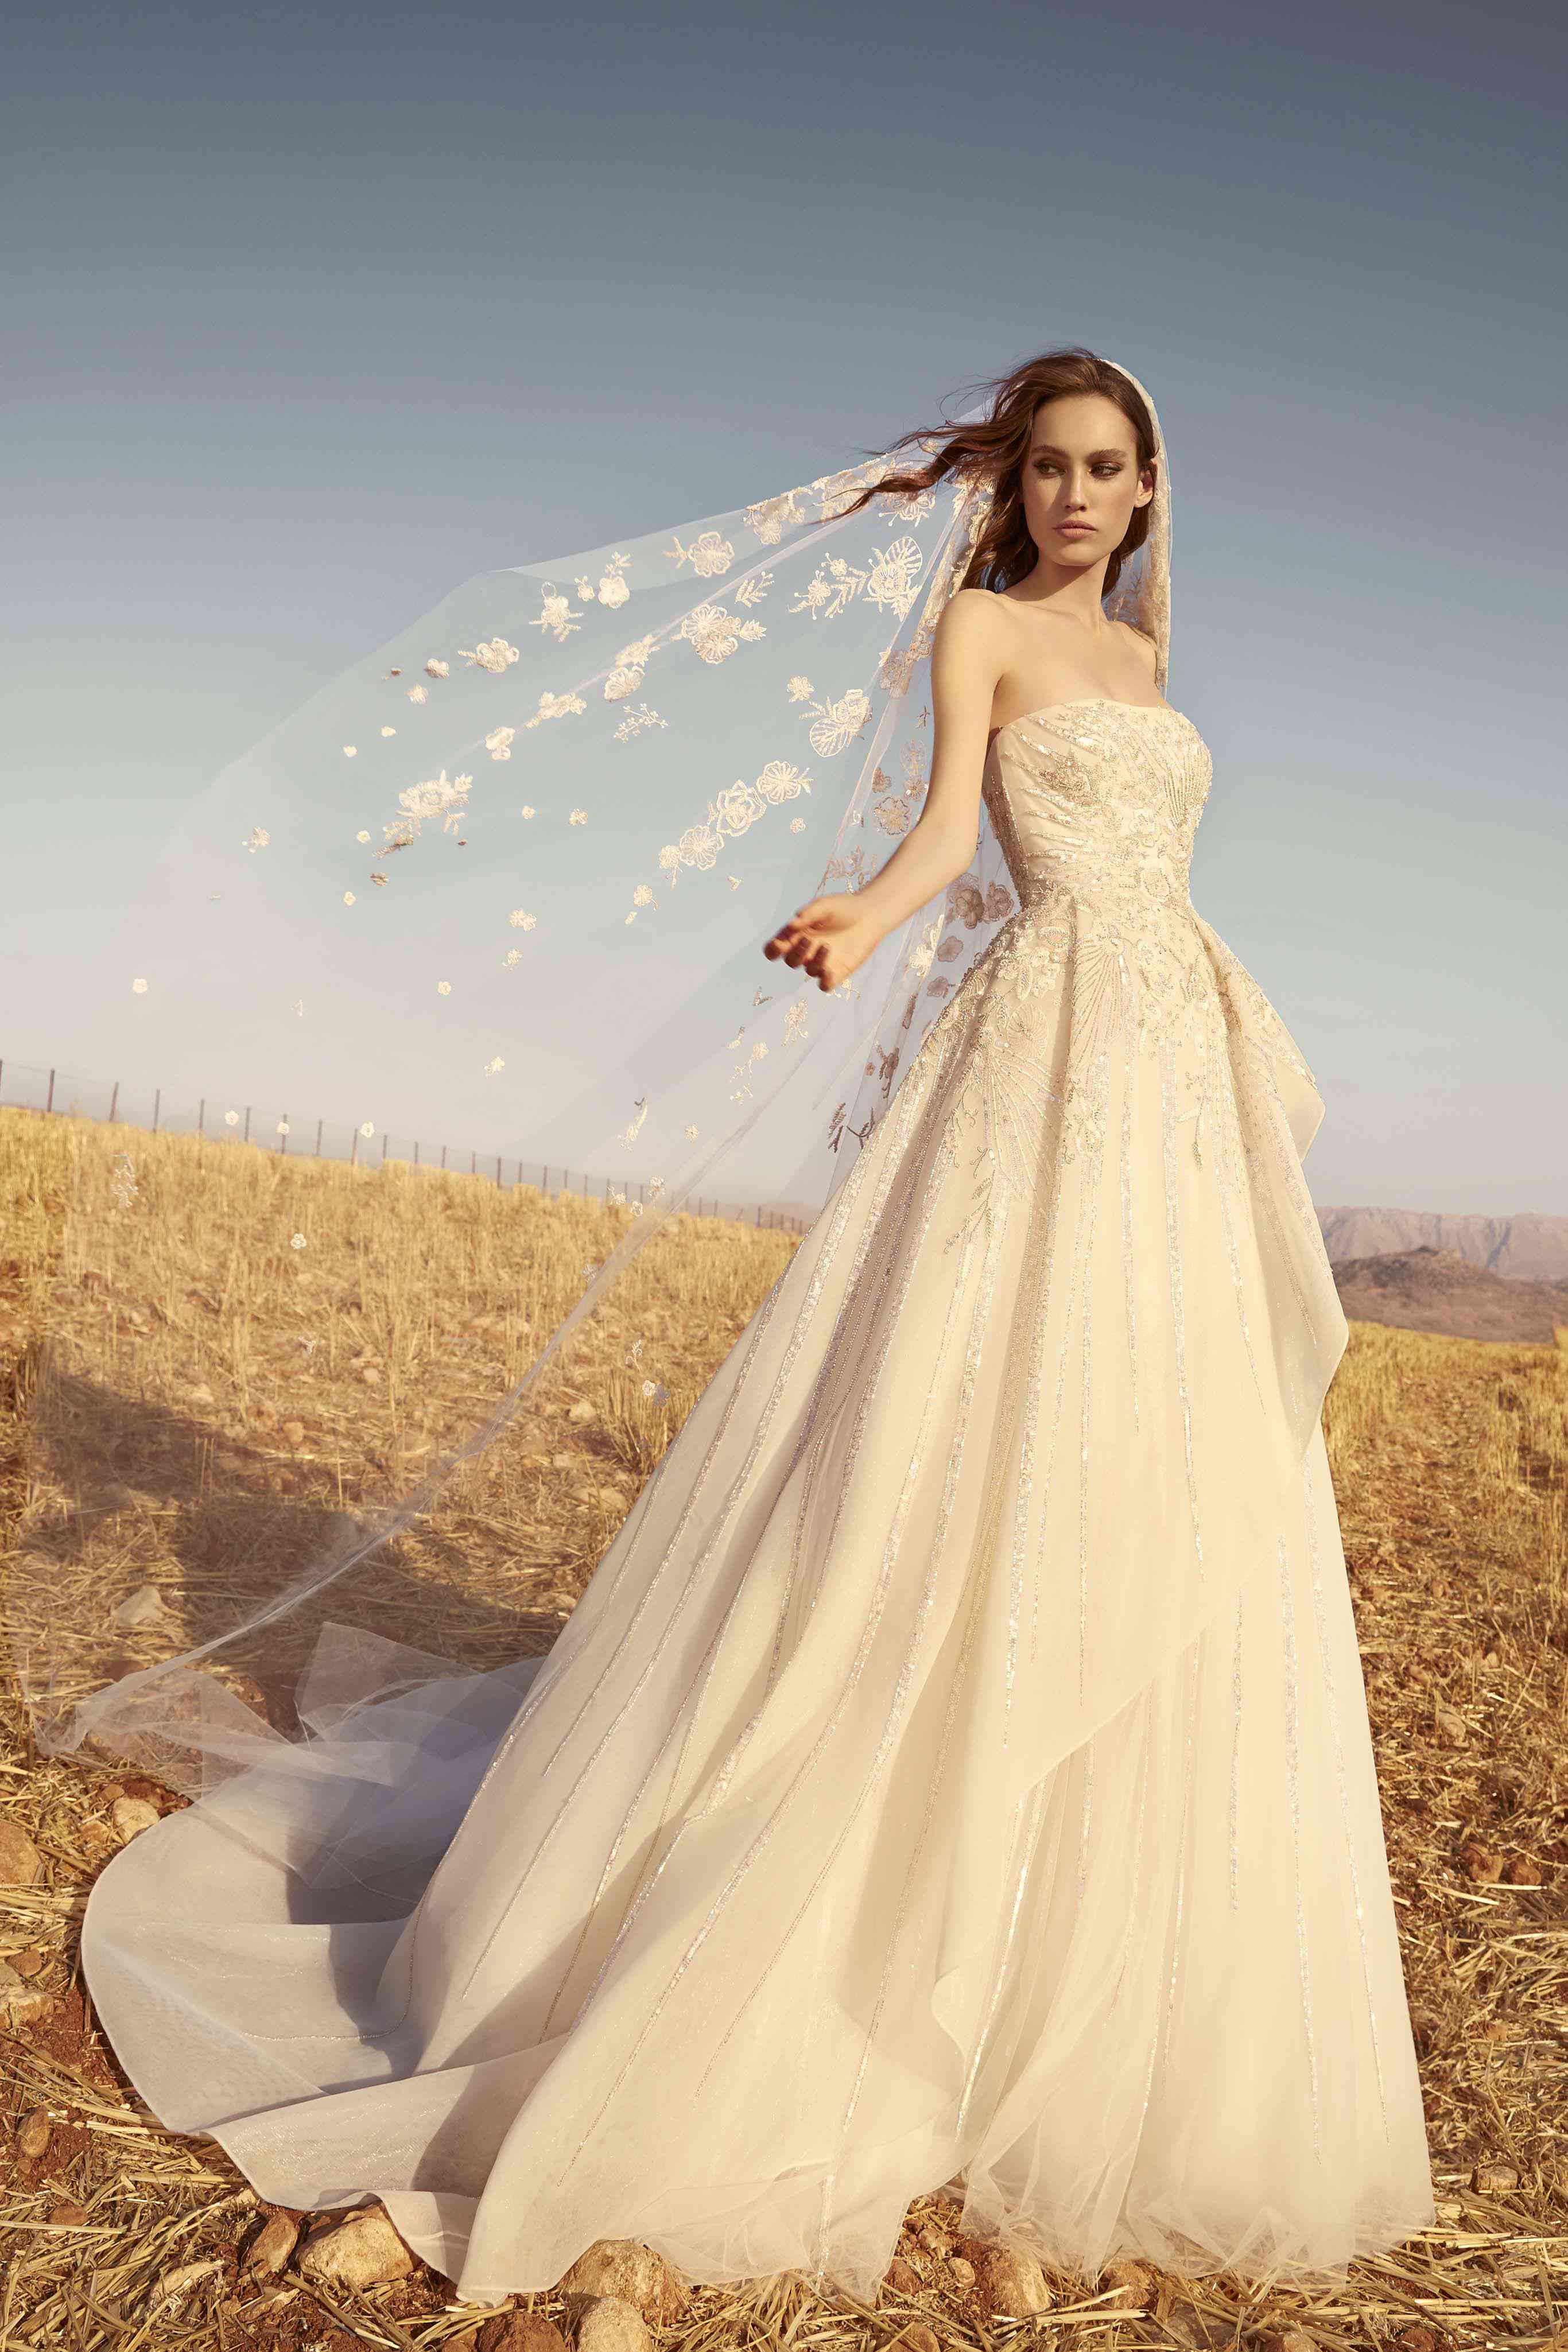 Model in a strapless, layered, flared fully beaded sand-colored tulle dress with a matching veil